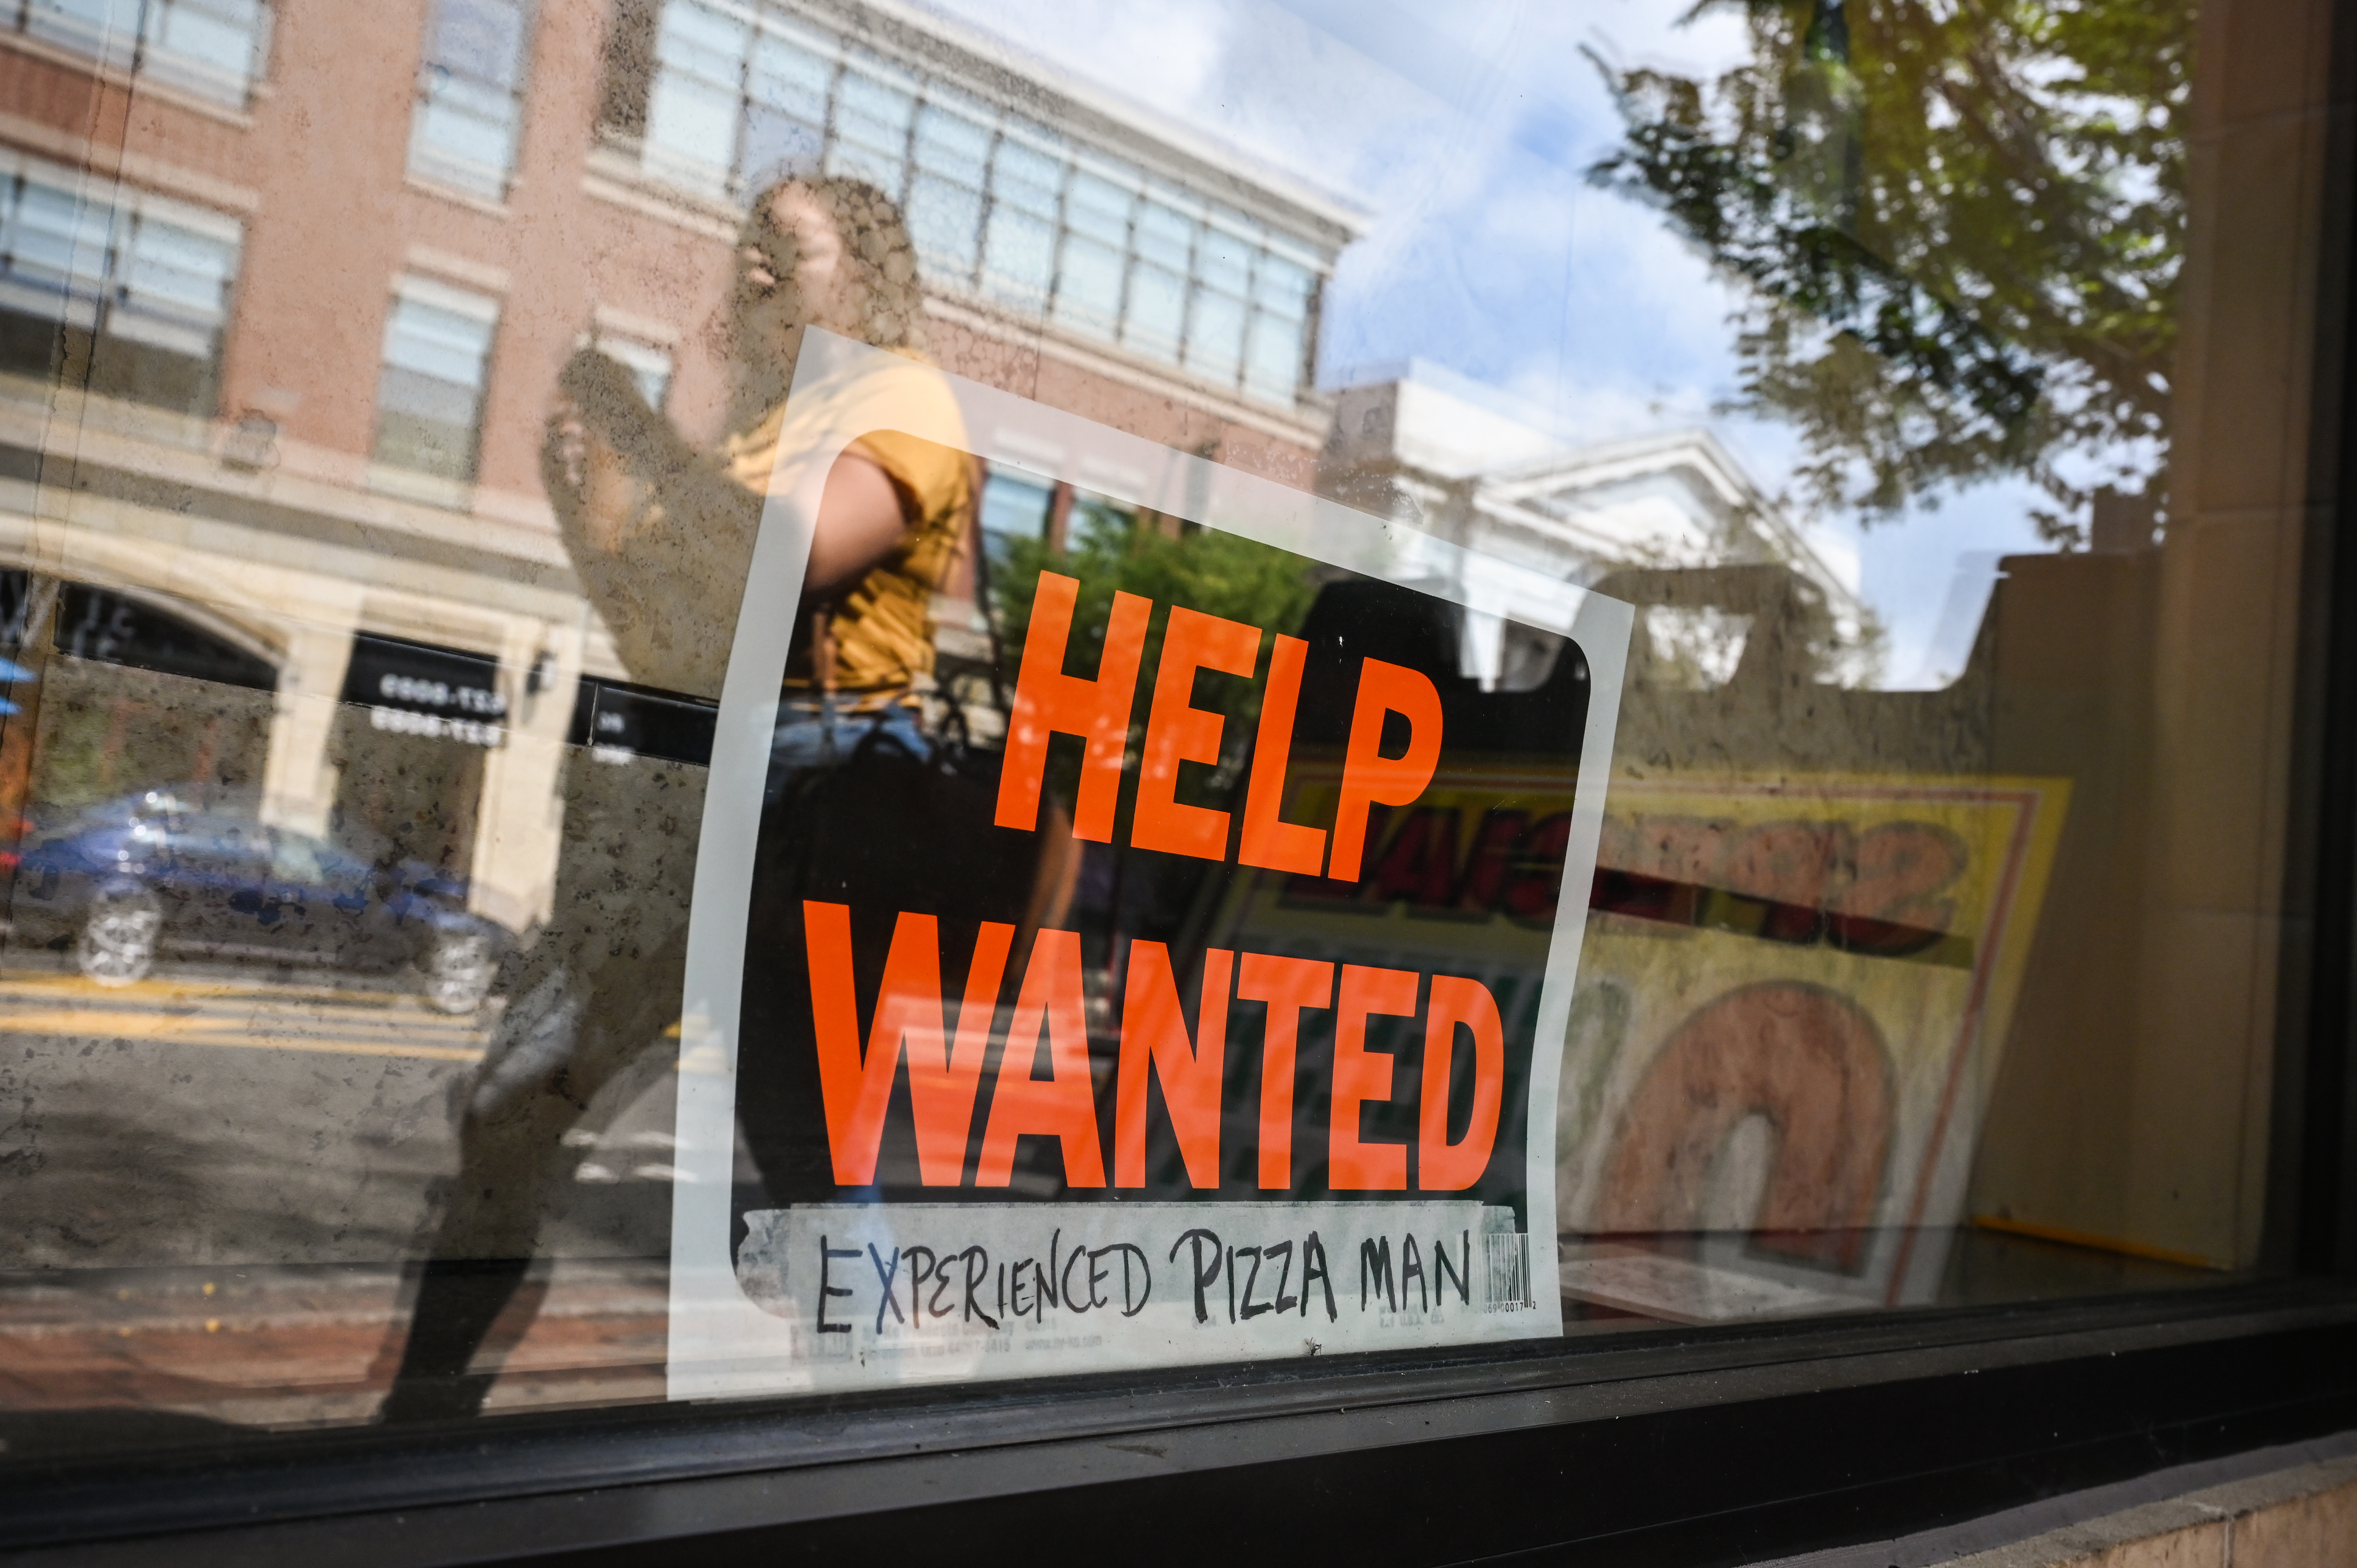 A help wanted sign in window of Long Island pizzeria